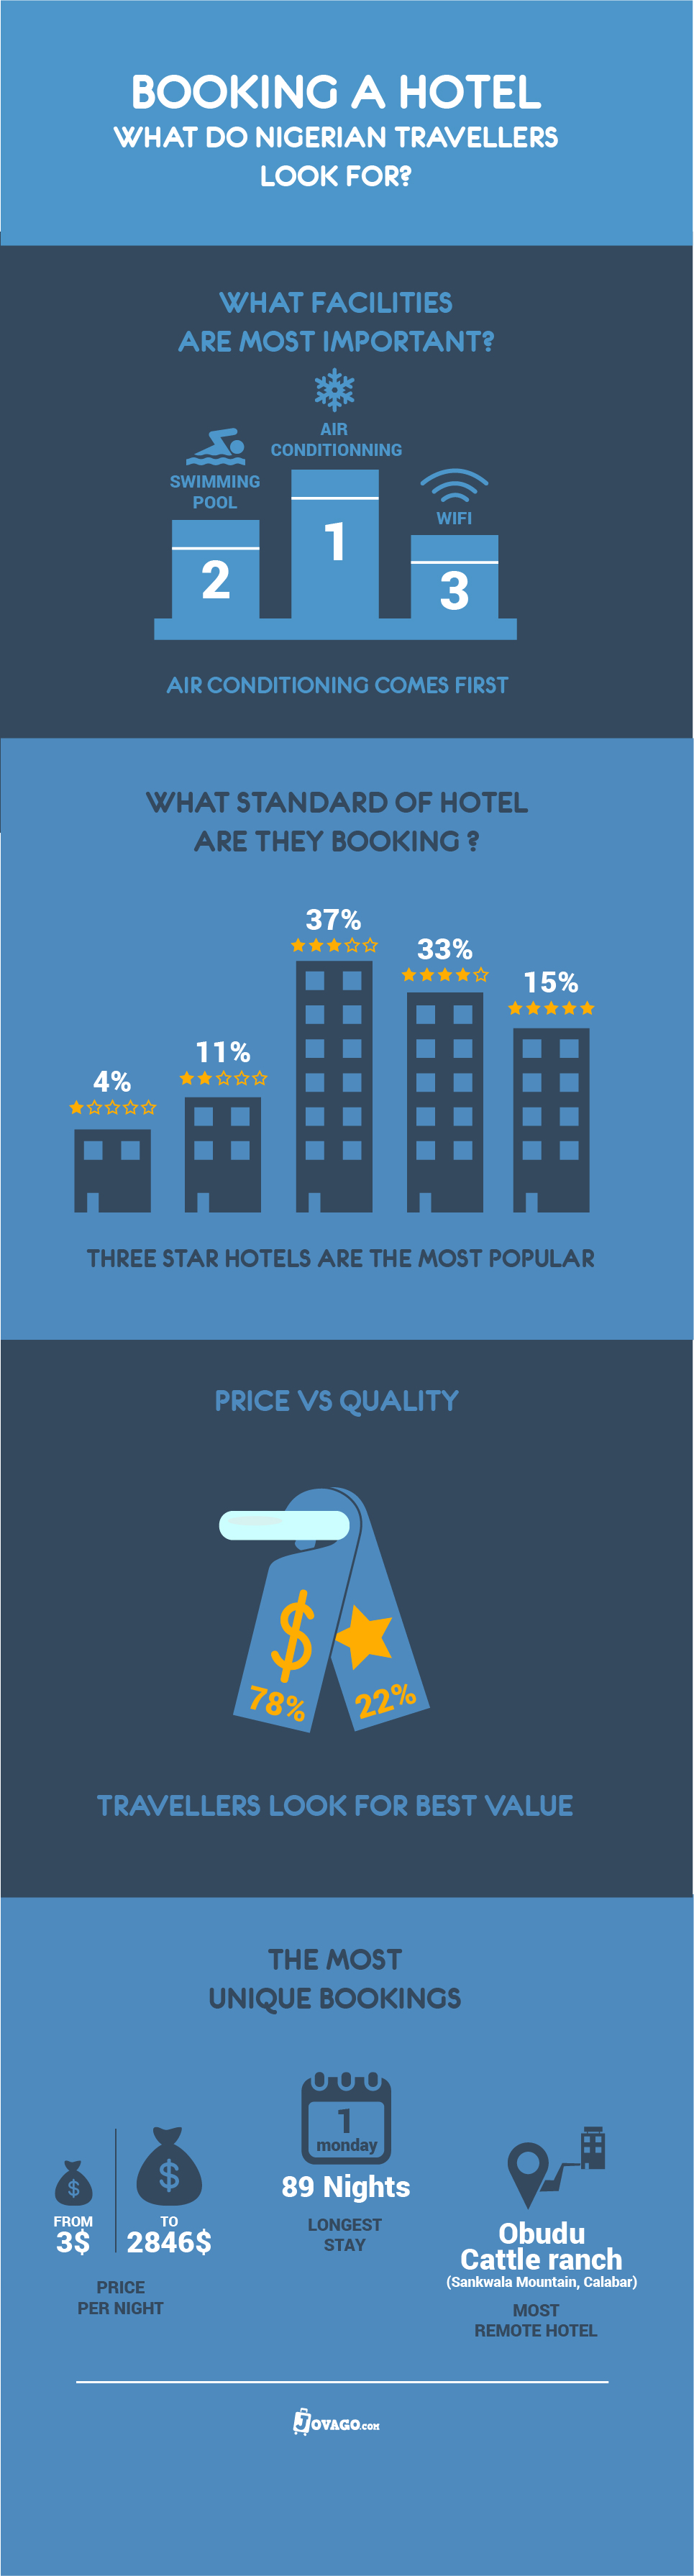 Habits of the Nigerian hotel website visitor